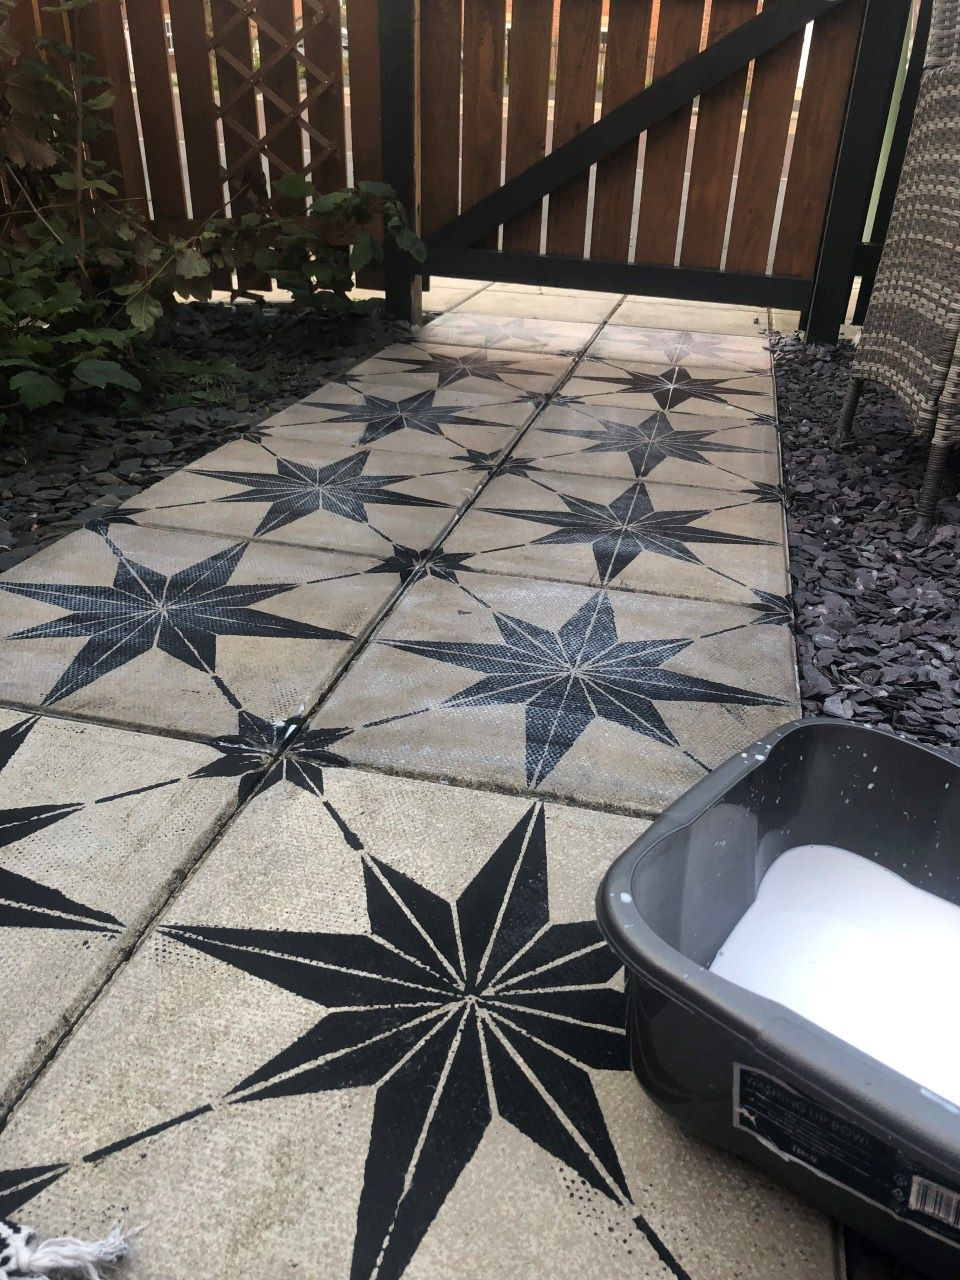 How to makeover a concrete slab patio/path for under £40 > Let's Talk...